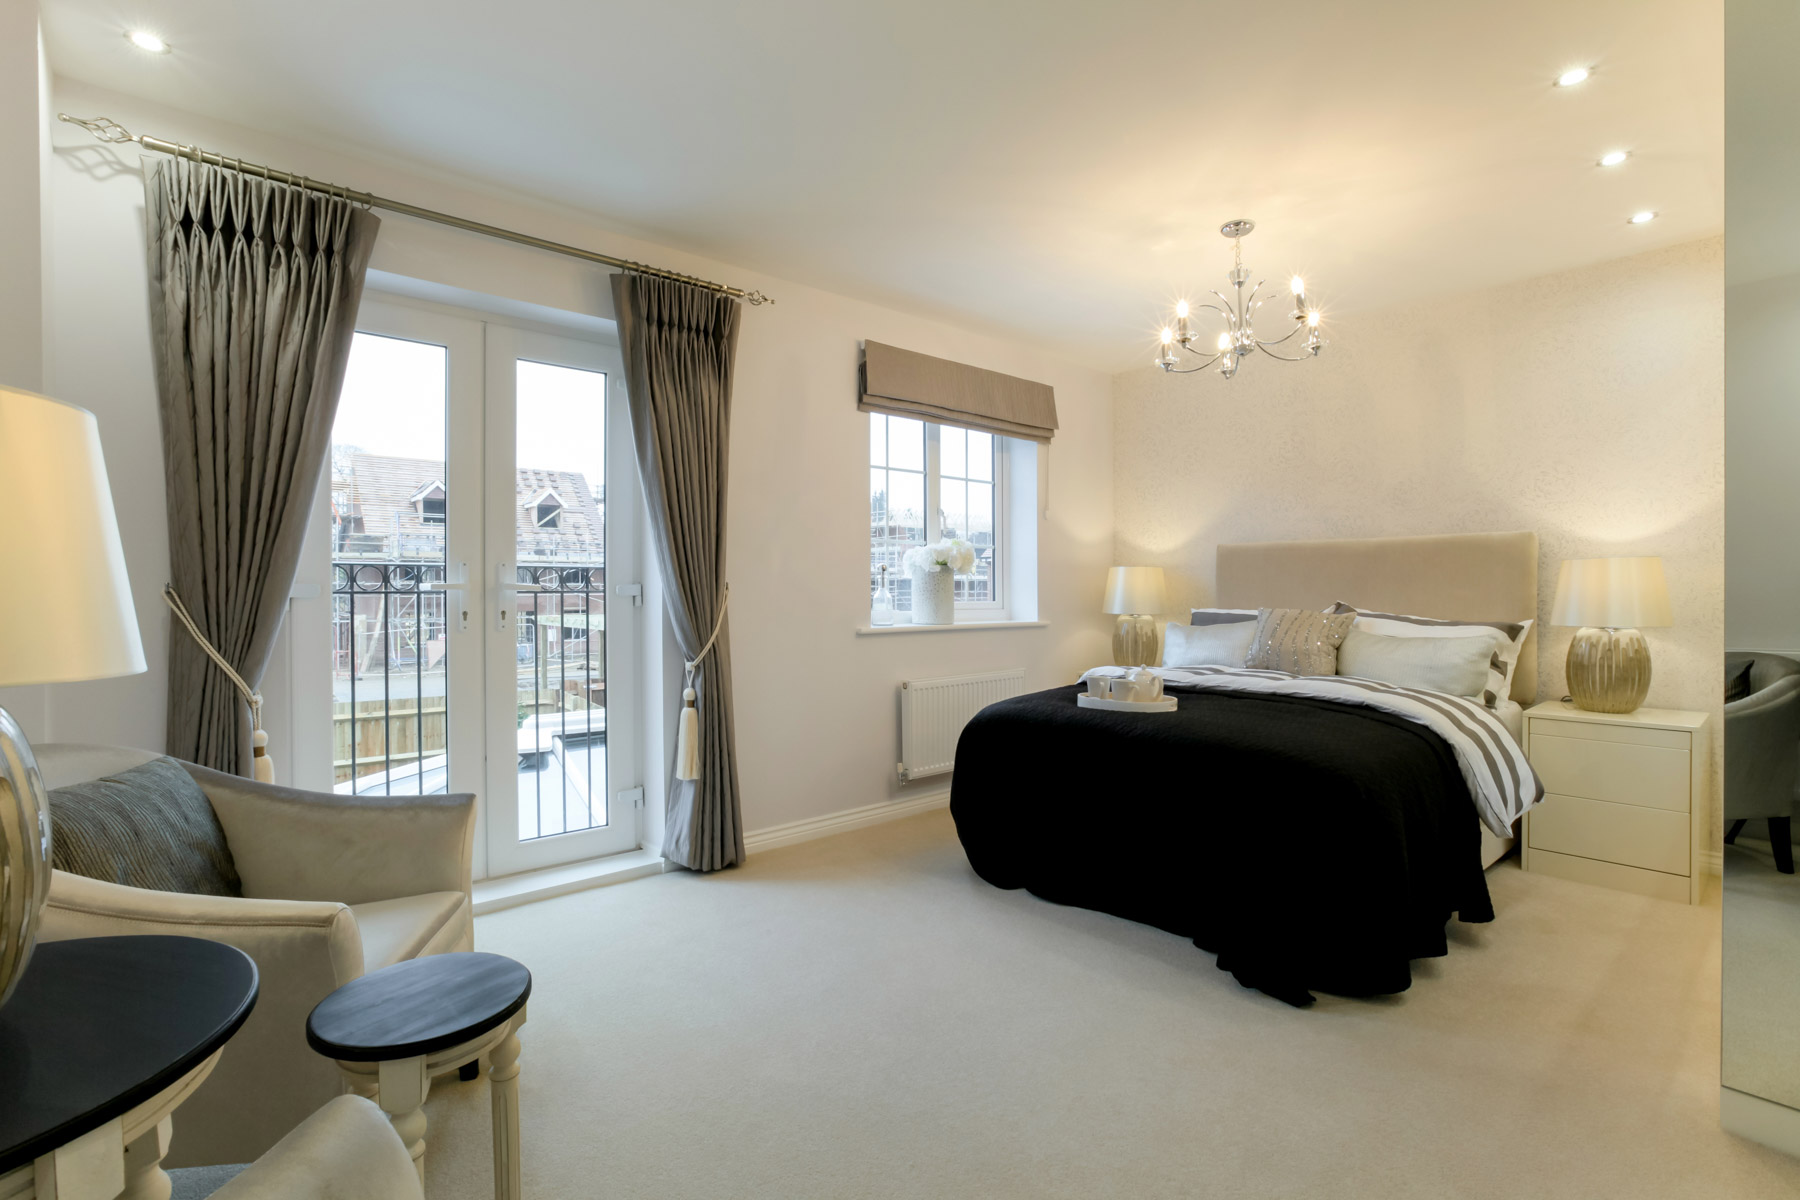 Typical Belbury bedroom